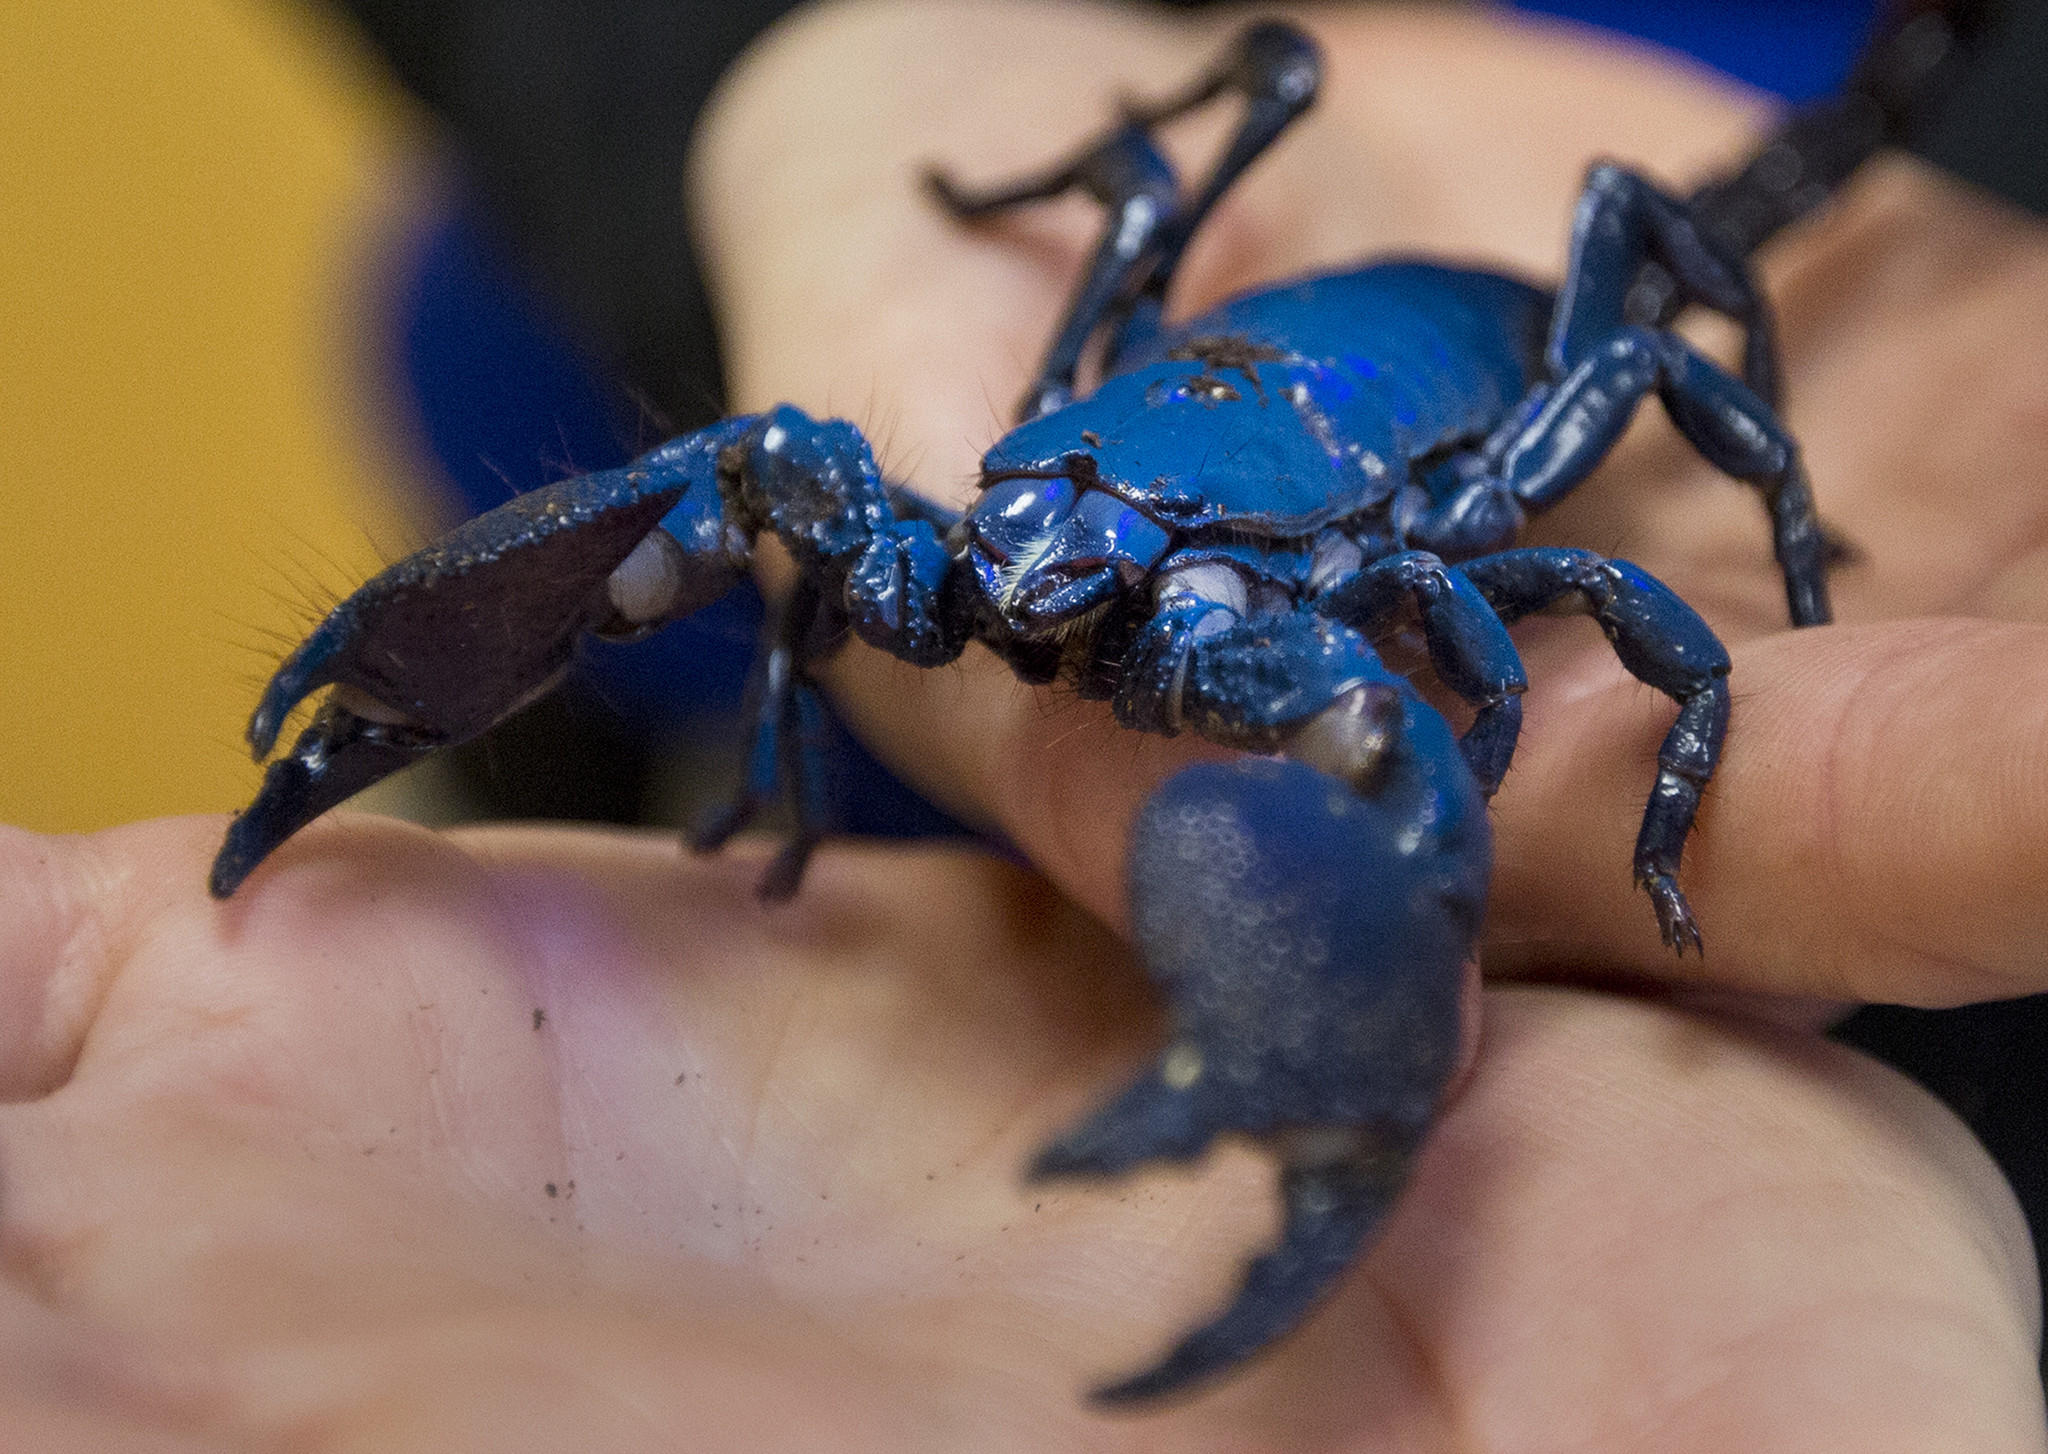 Allyson Zahm, education manager at the Virginia Zoo, holds an Emperor Scorpion prior to a ribbon-cutting ceremony for the zoo's new animal wellness center on April 29.